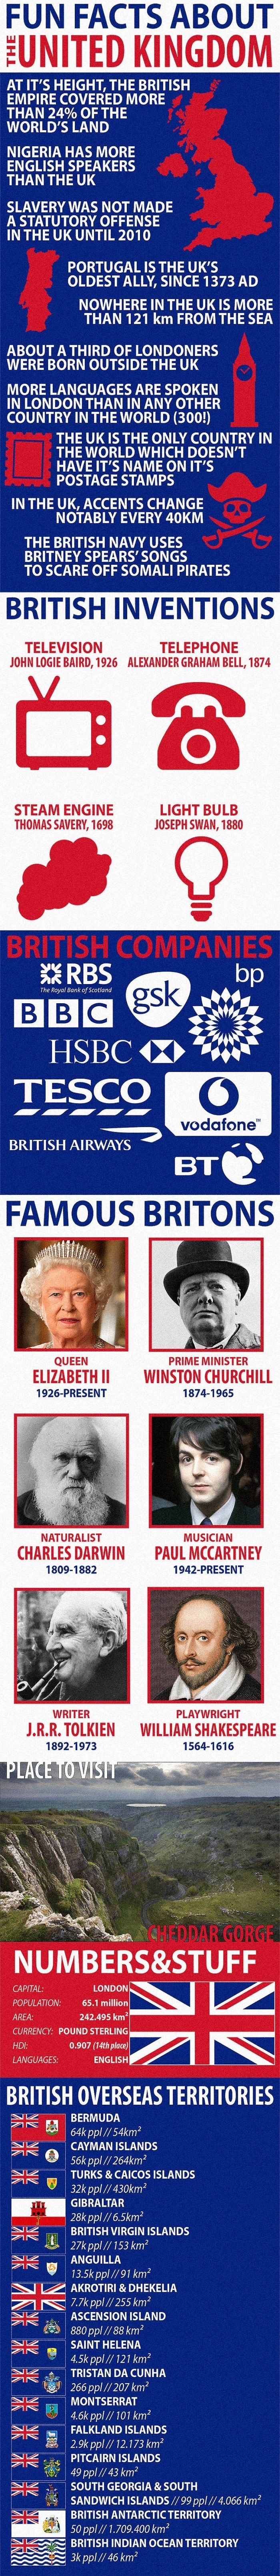 Facts about the United Kingdom